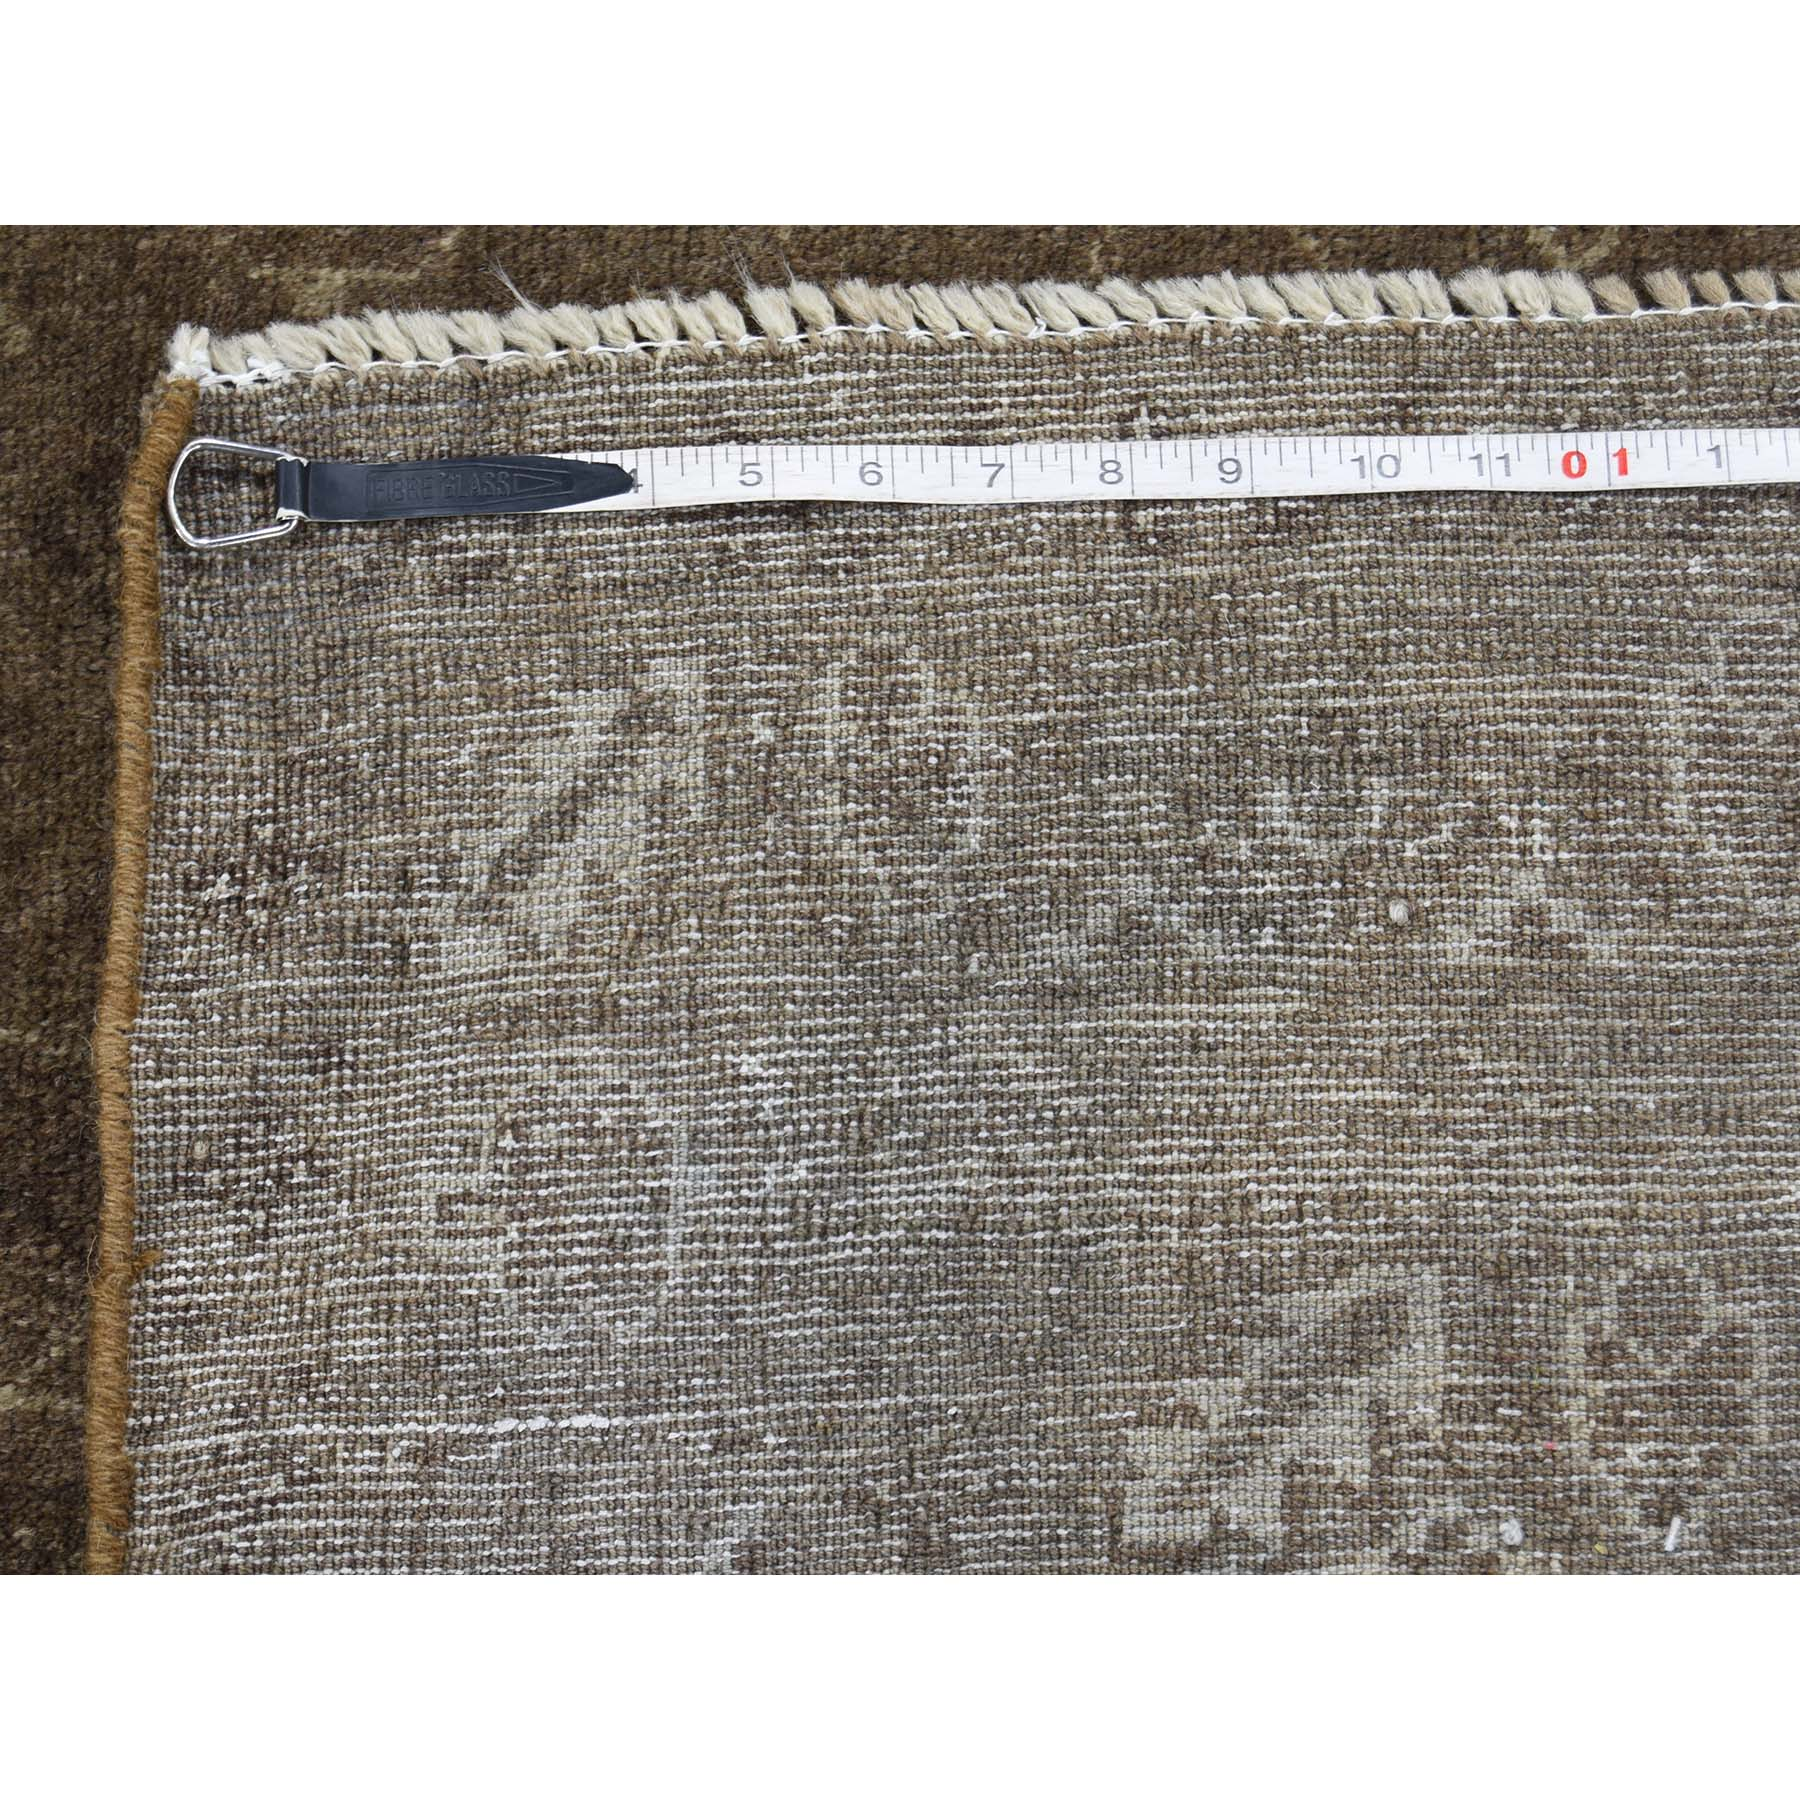 4-x7- Pure Wool Vintage Afghan Baluch Silver Wash Hand-Knotted Rug